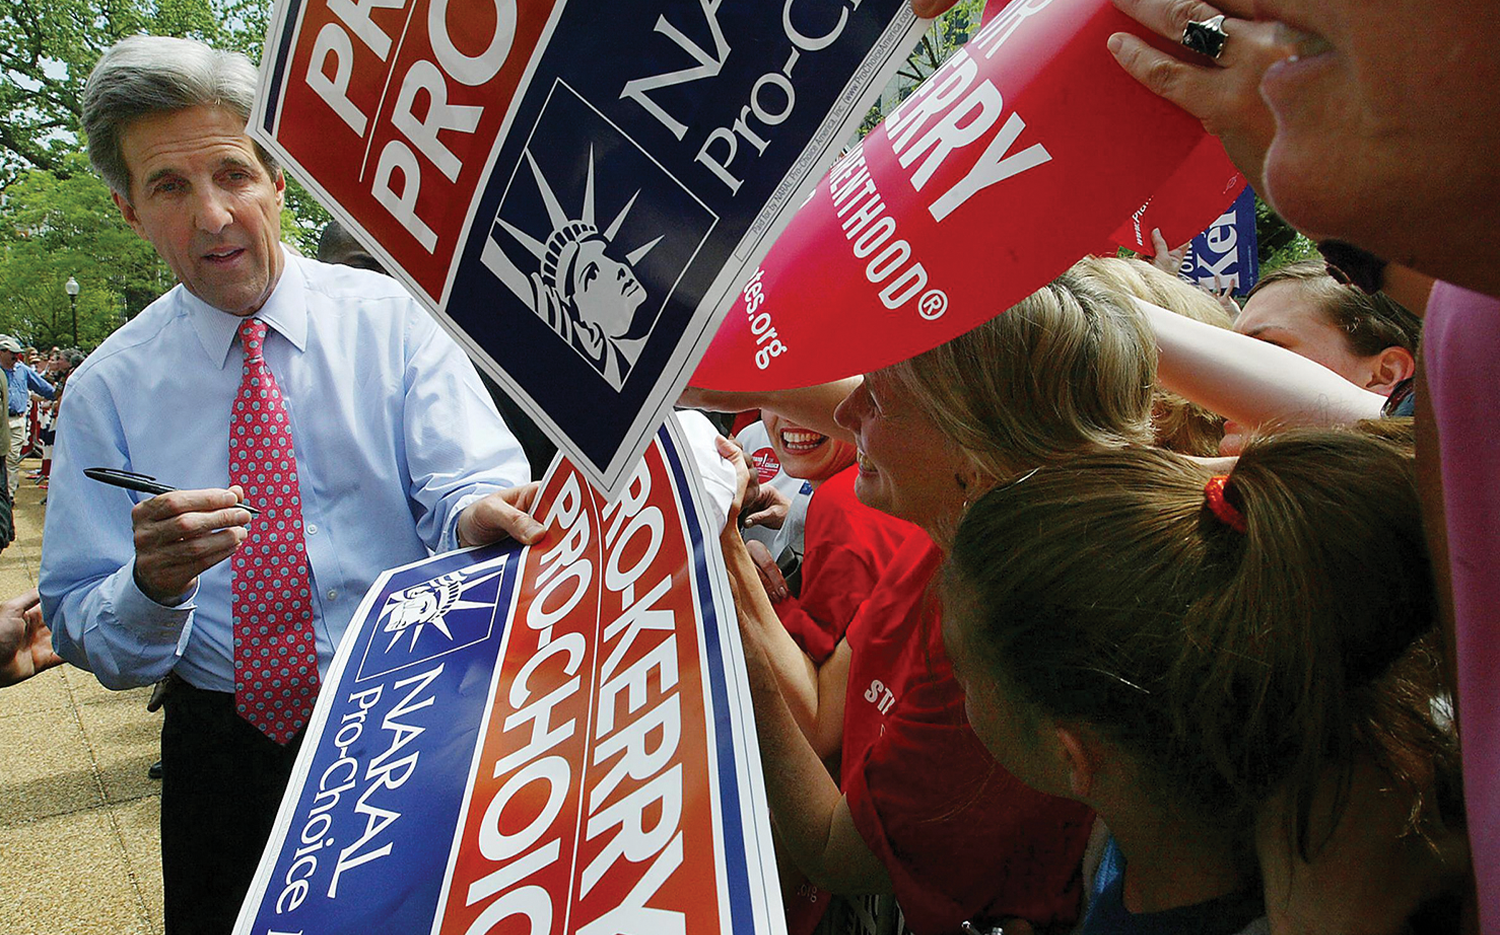 John Kerry signs autographs for pro-abortion supporters during his 2004 campaign.